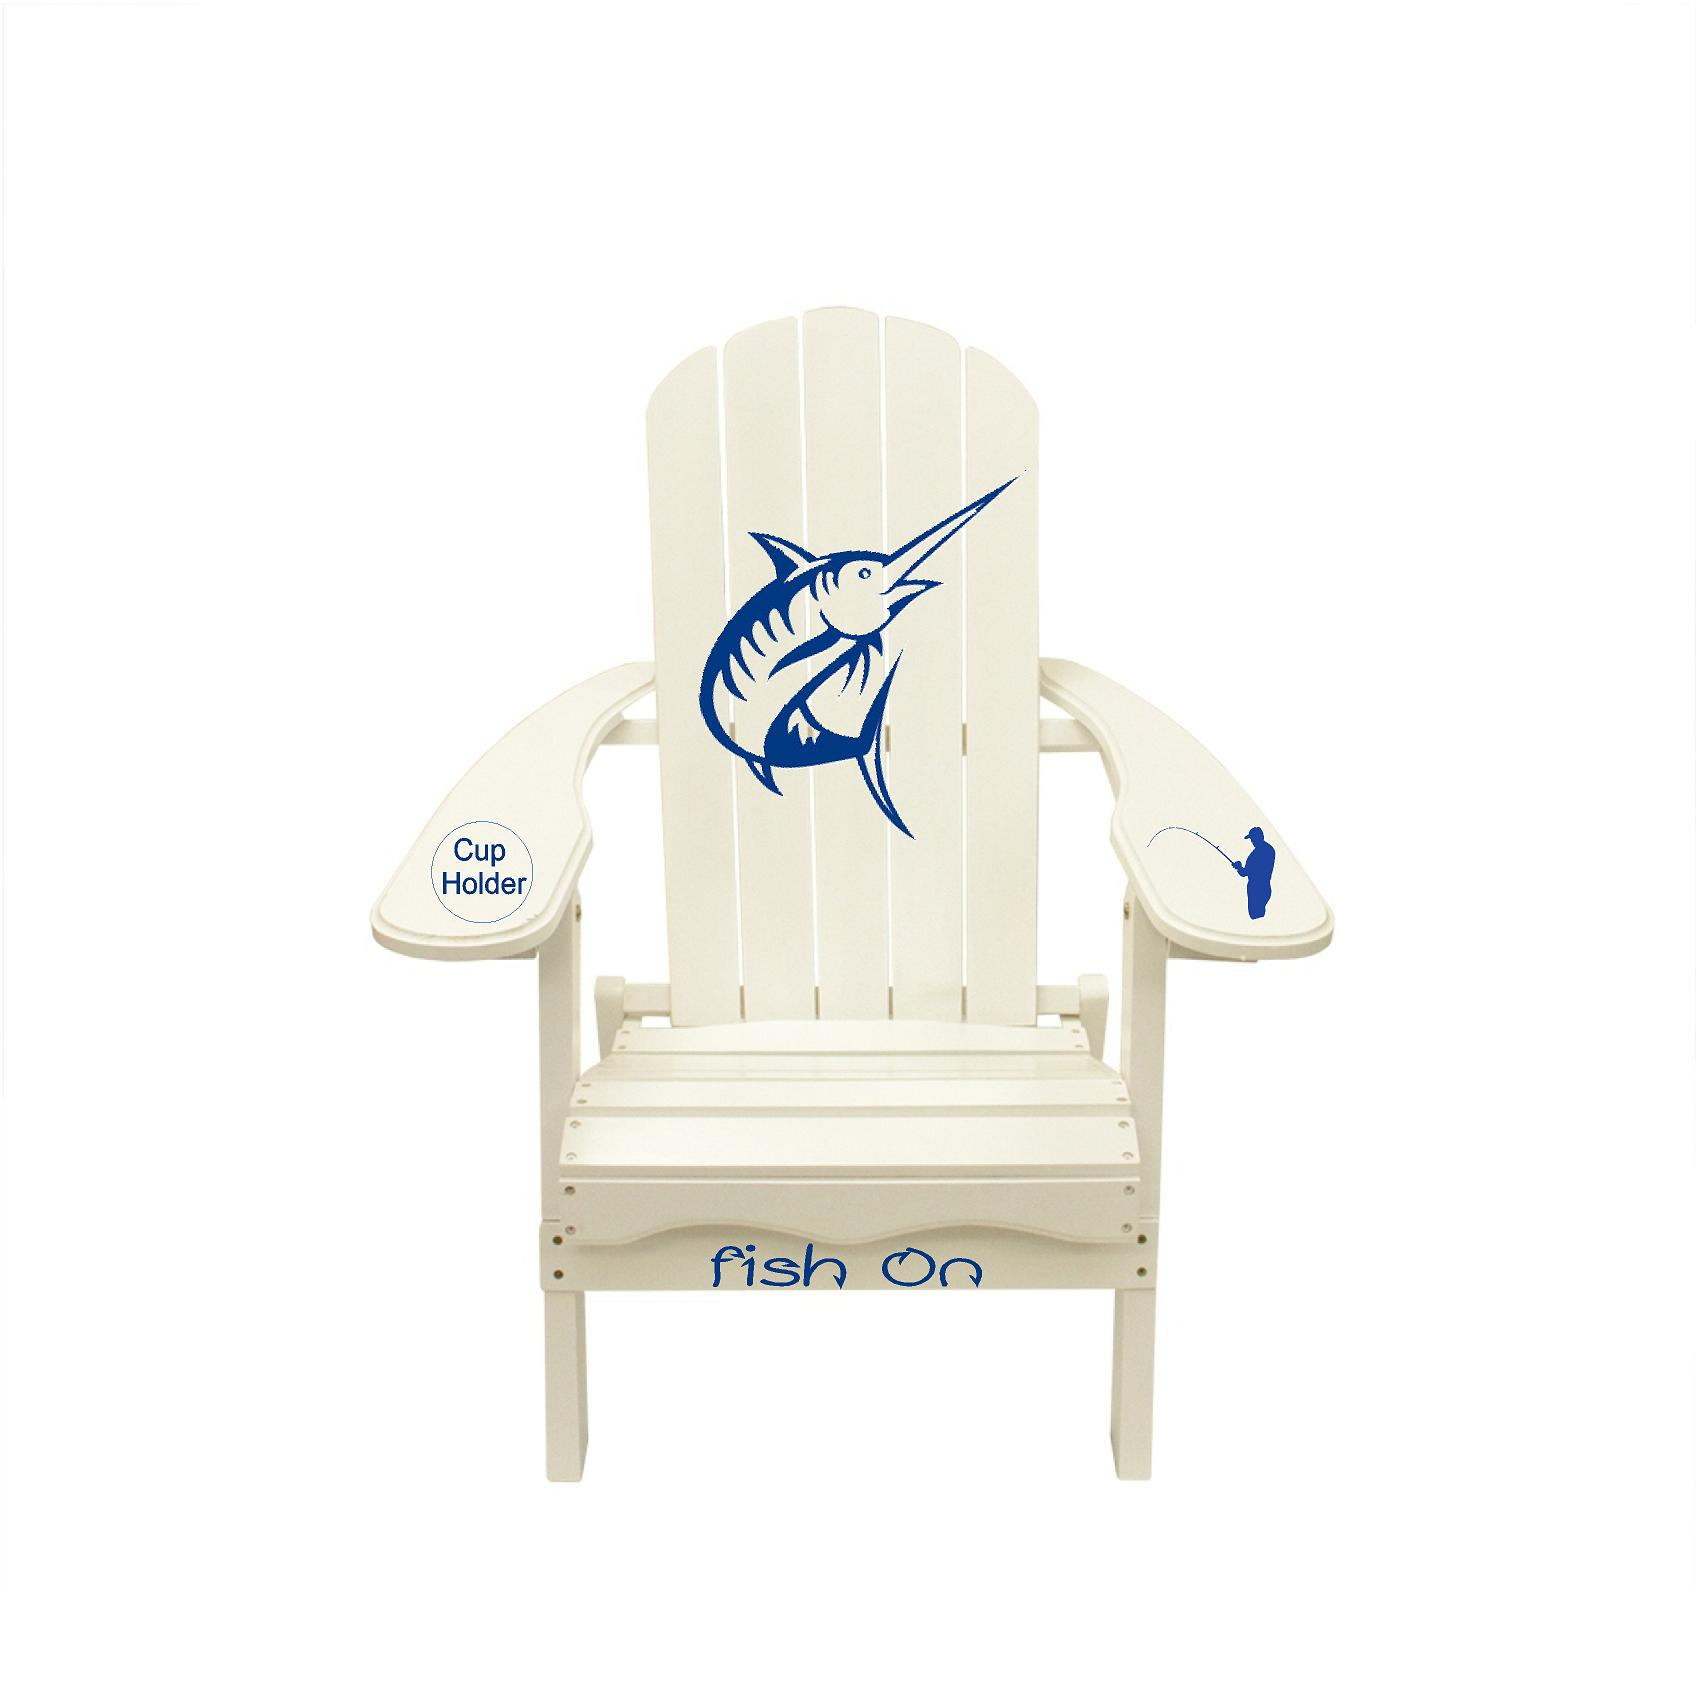 "Marlin Fishing with Quote ""Fish On"" Wooden Adirondack Lounge Chair"